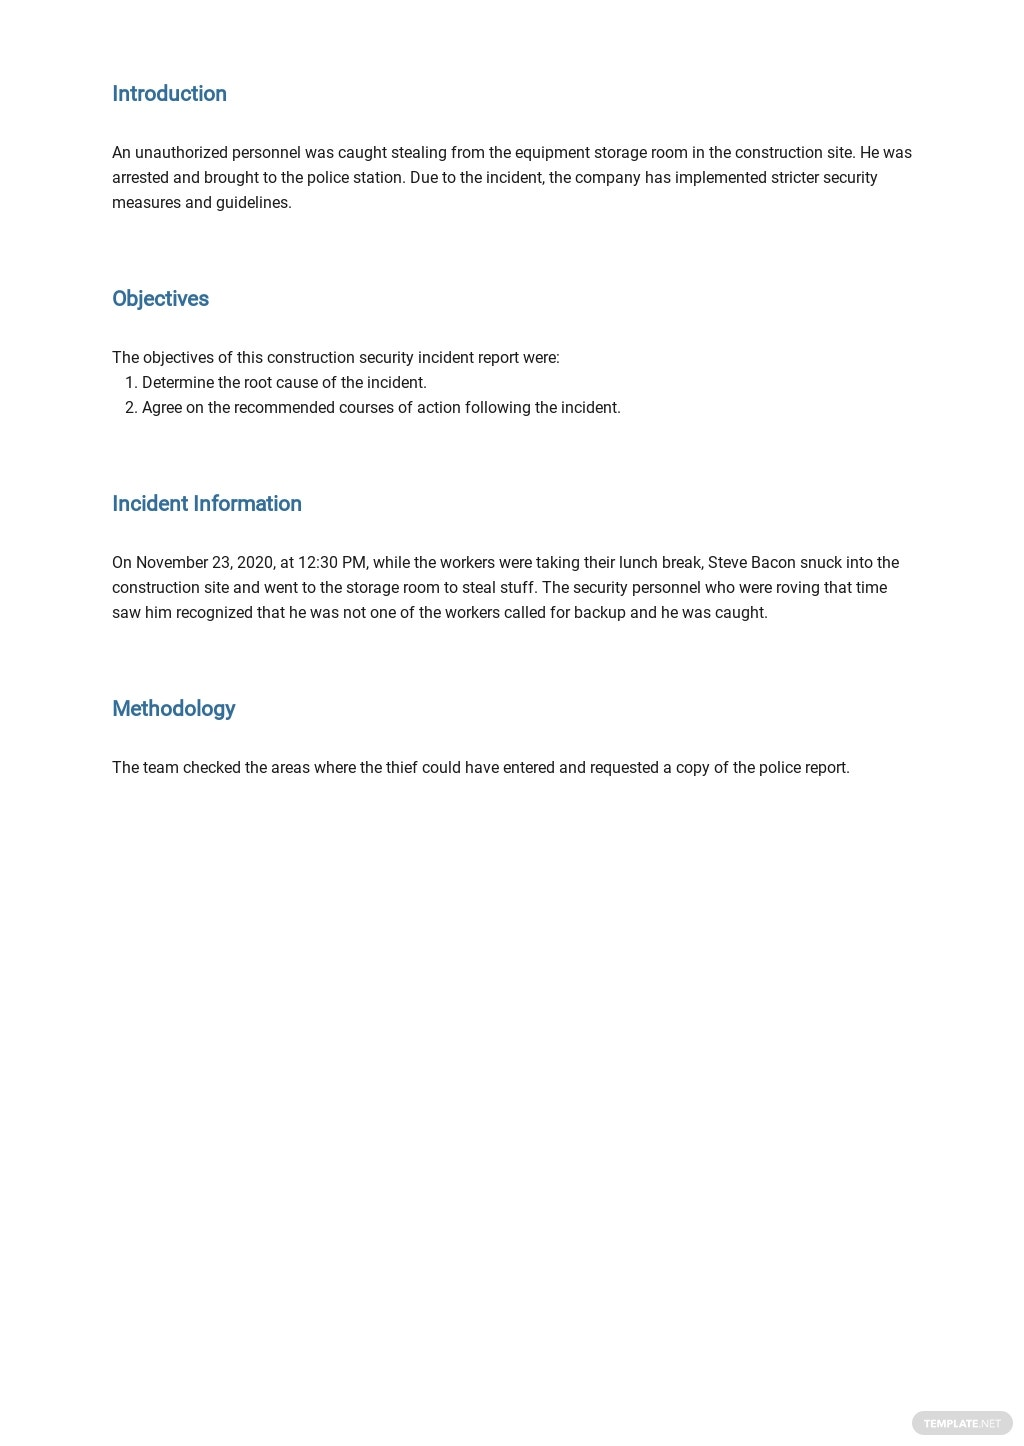 Construction Security Incident Report Template 1.jpe